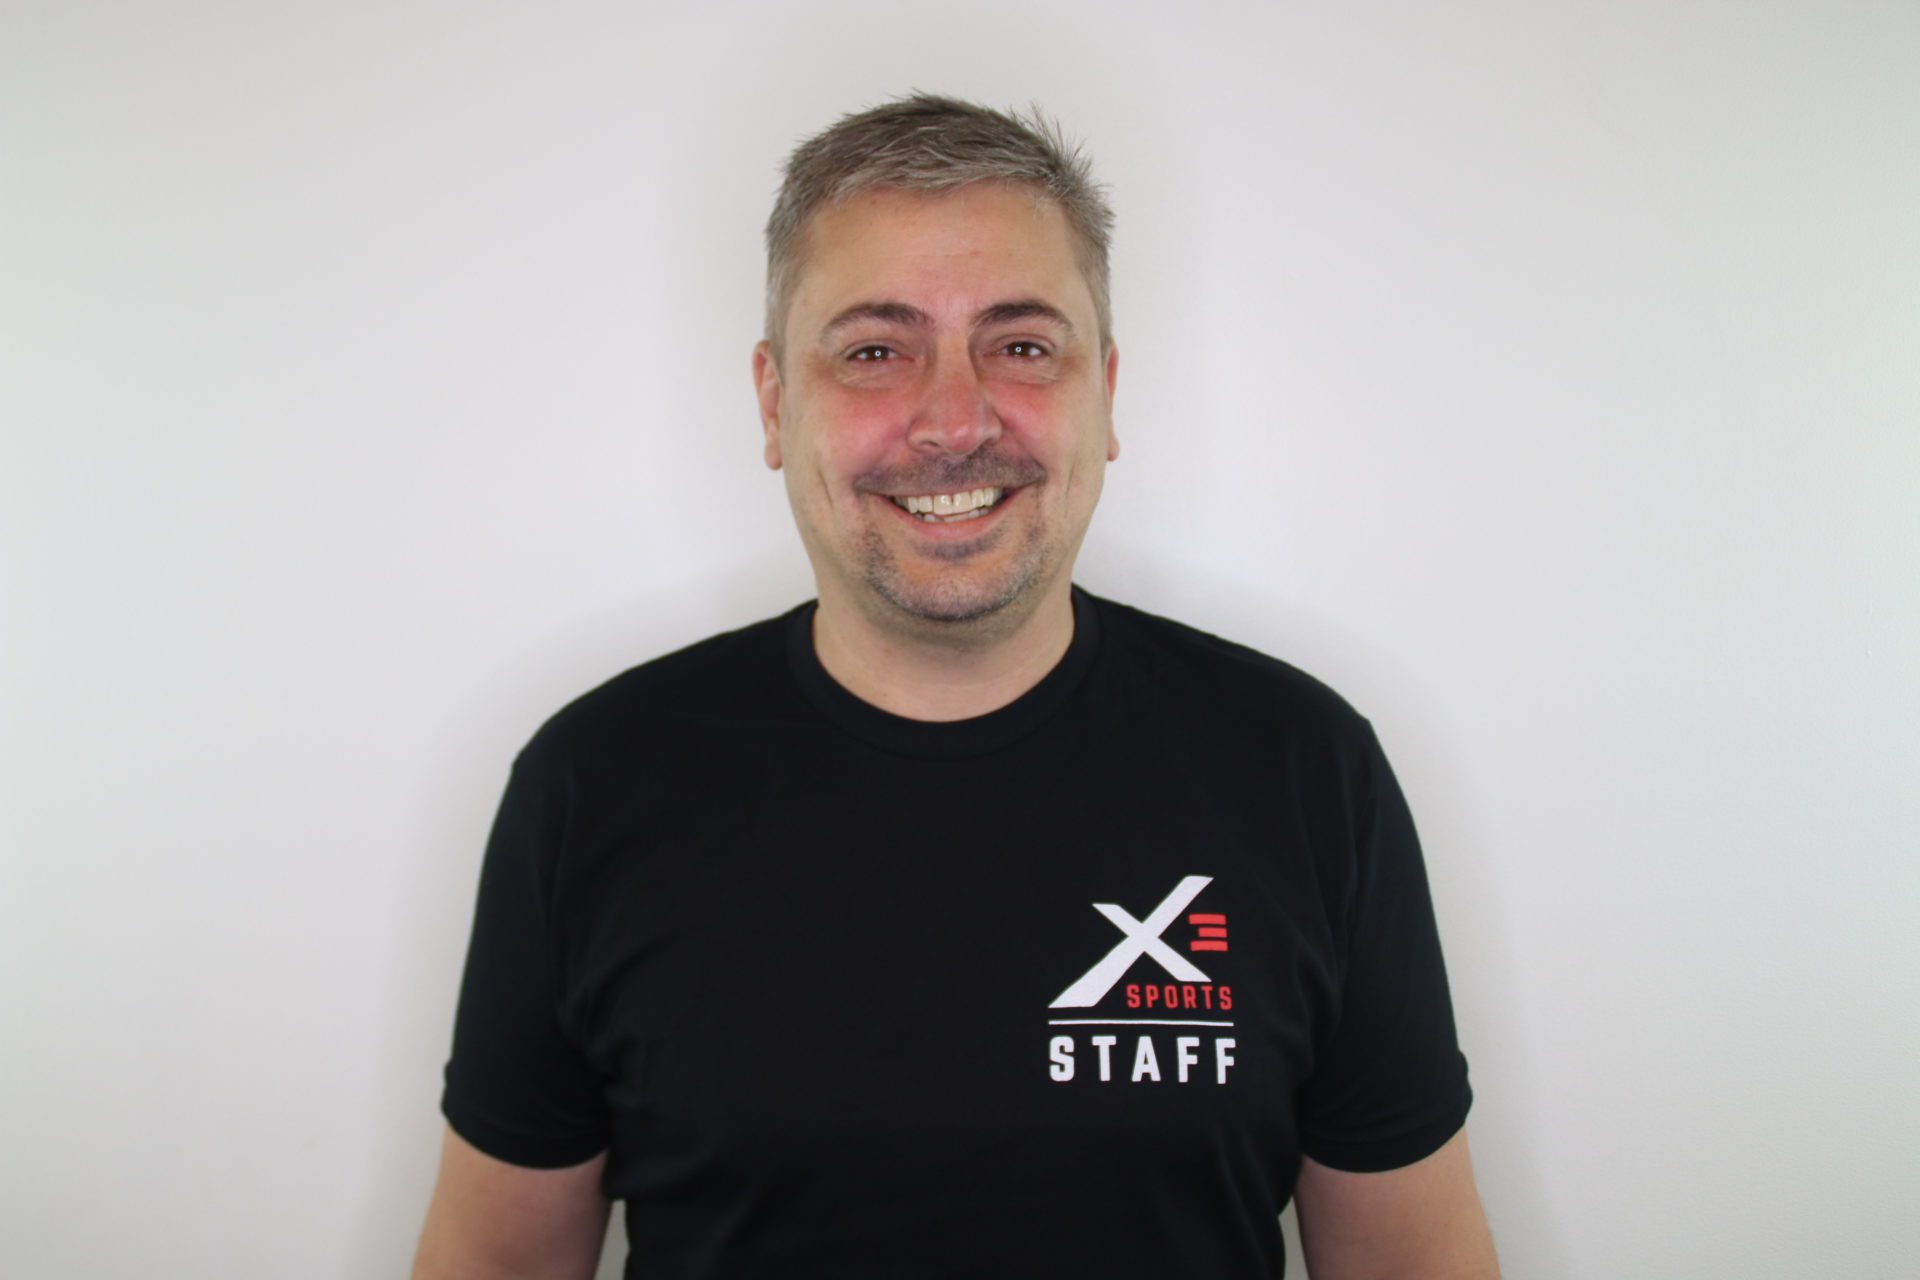 Scott Luchkowec | X3 Sports Employee | X3 Sports